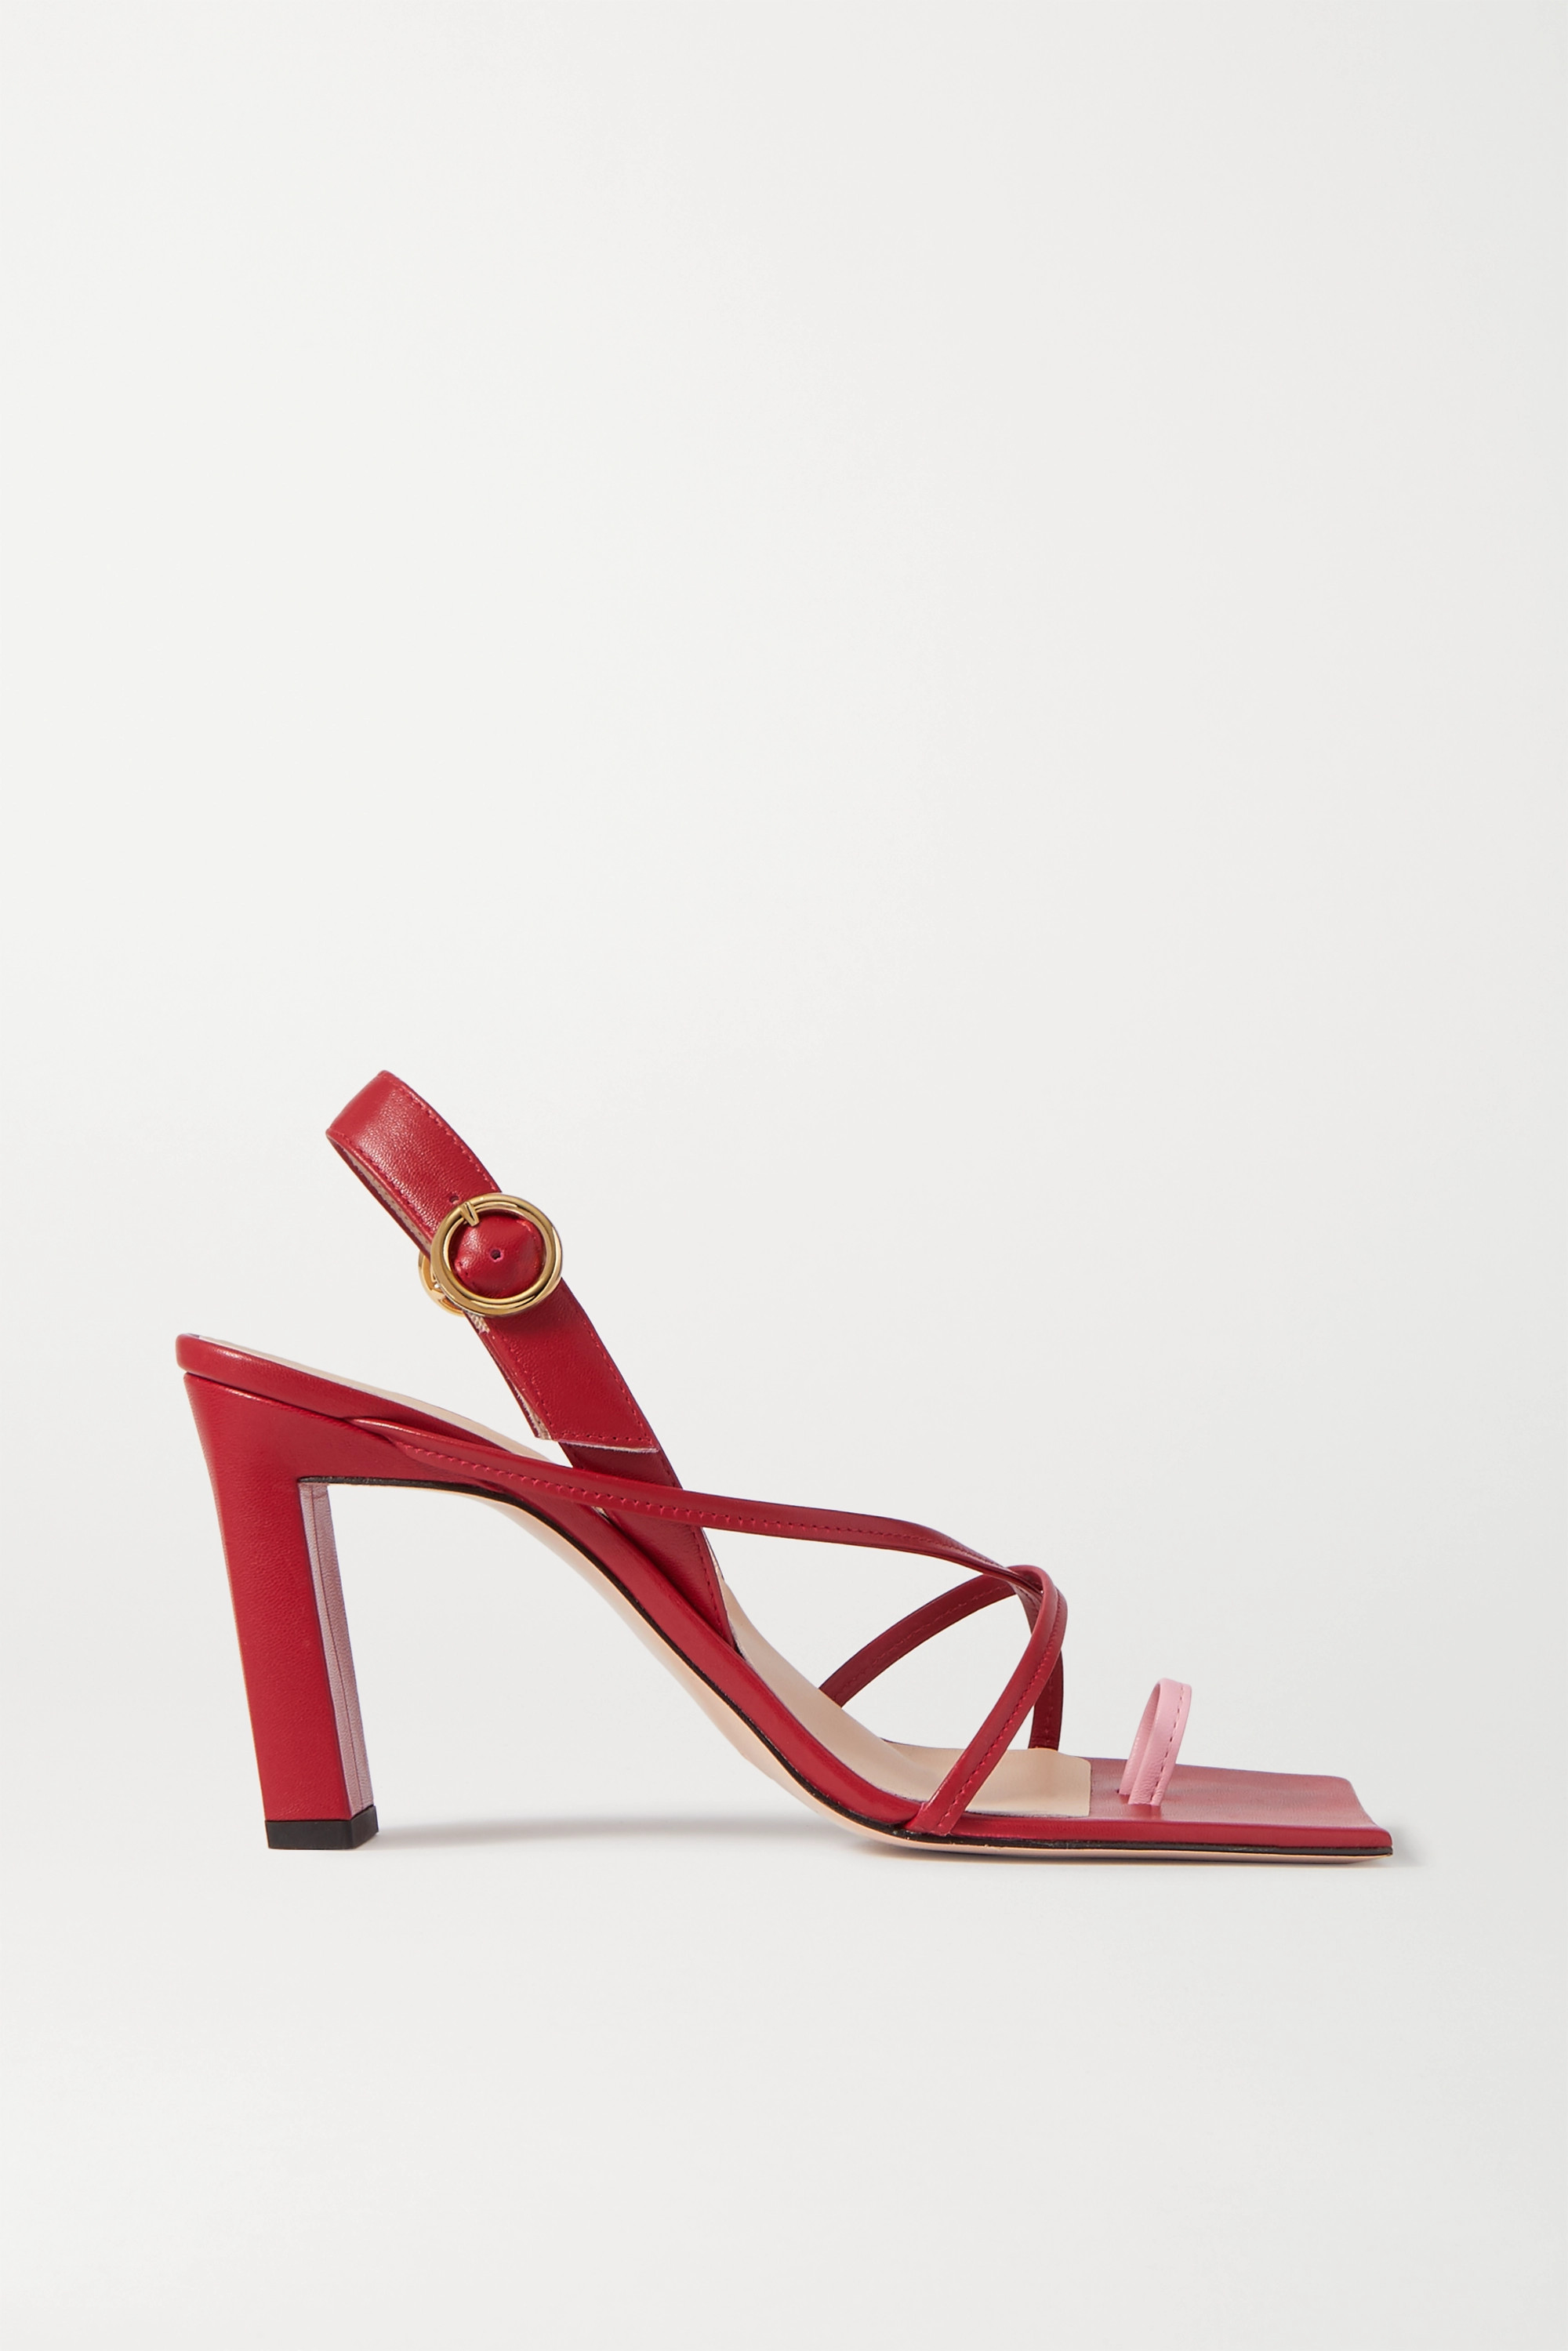 Wandler Elza two-tone leather slingback sandals